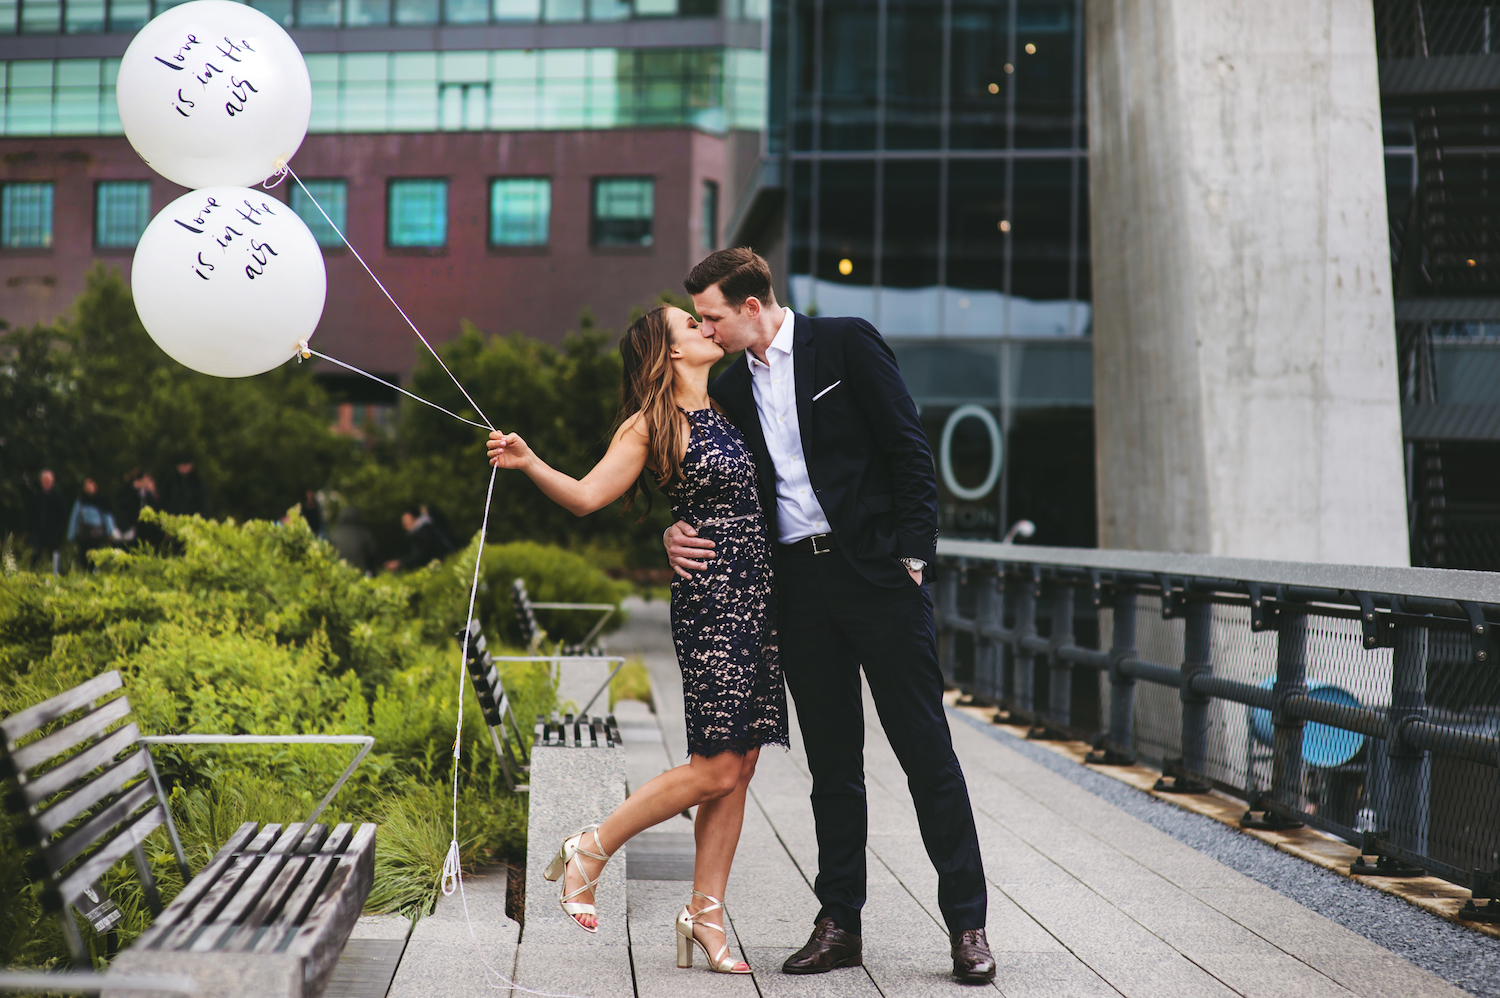 kayla&mike-kissing-balloons-high-line-park-engagement-photography-nyc